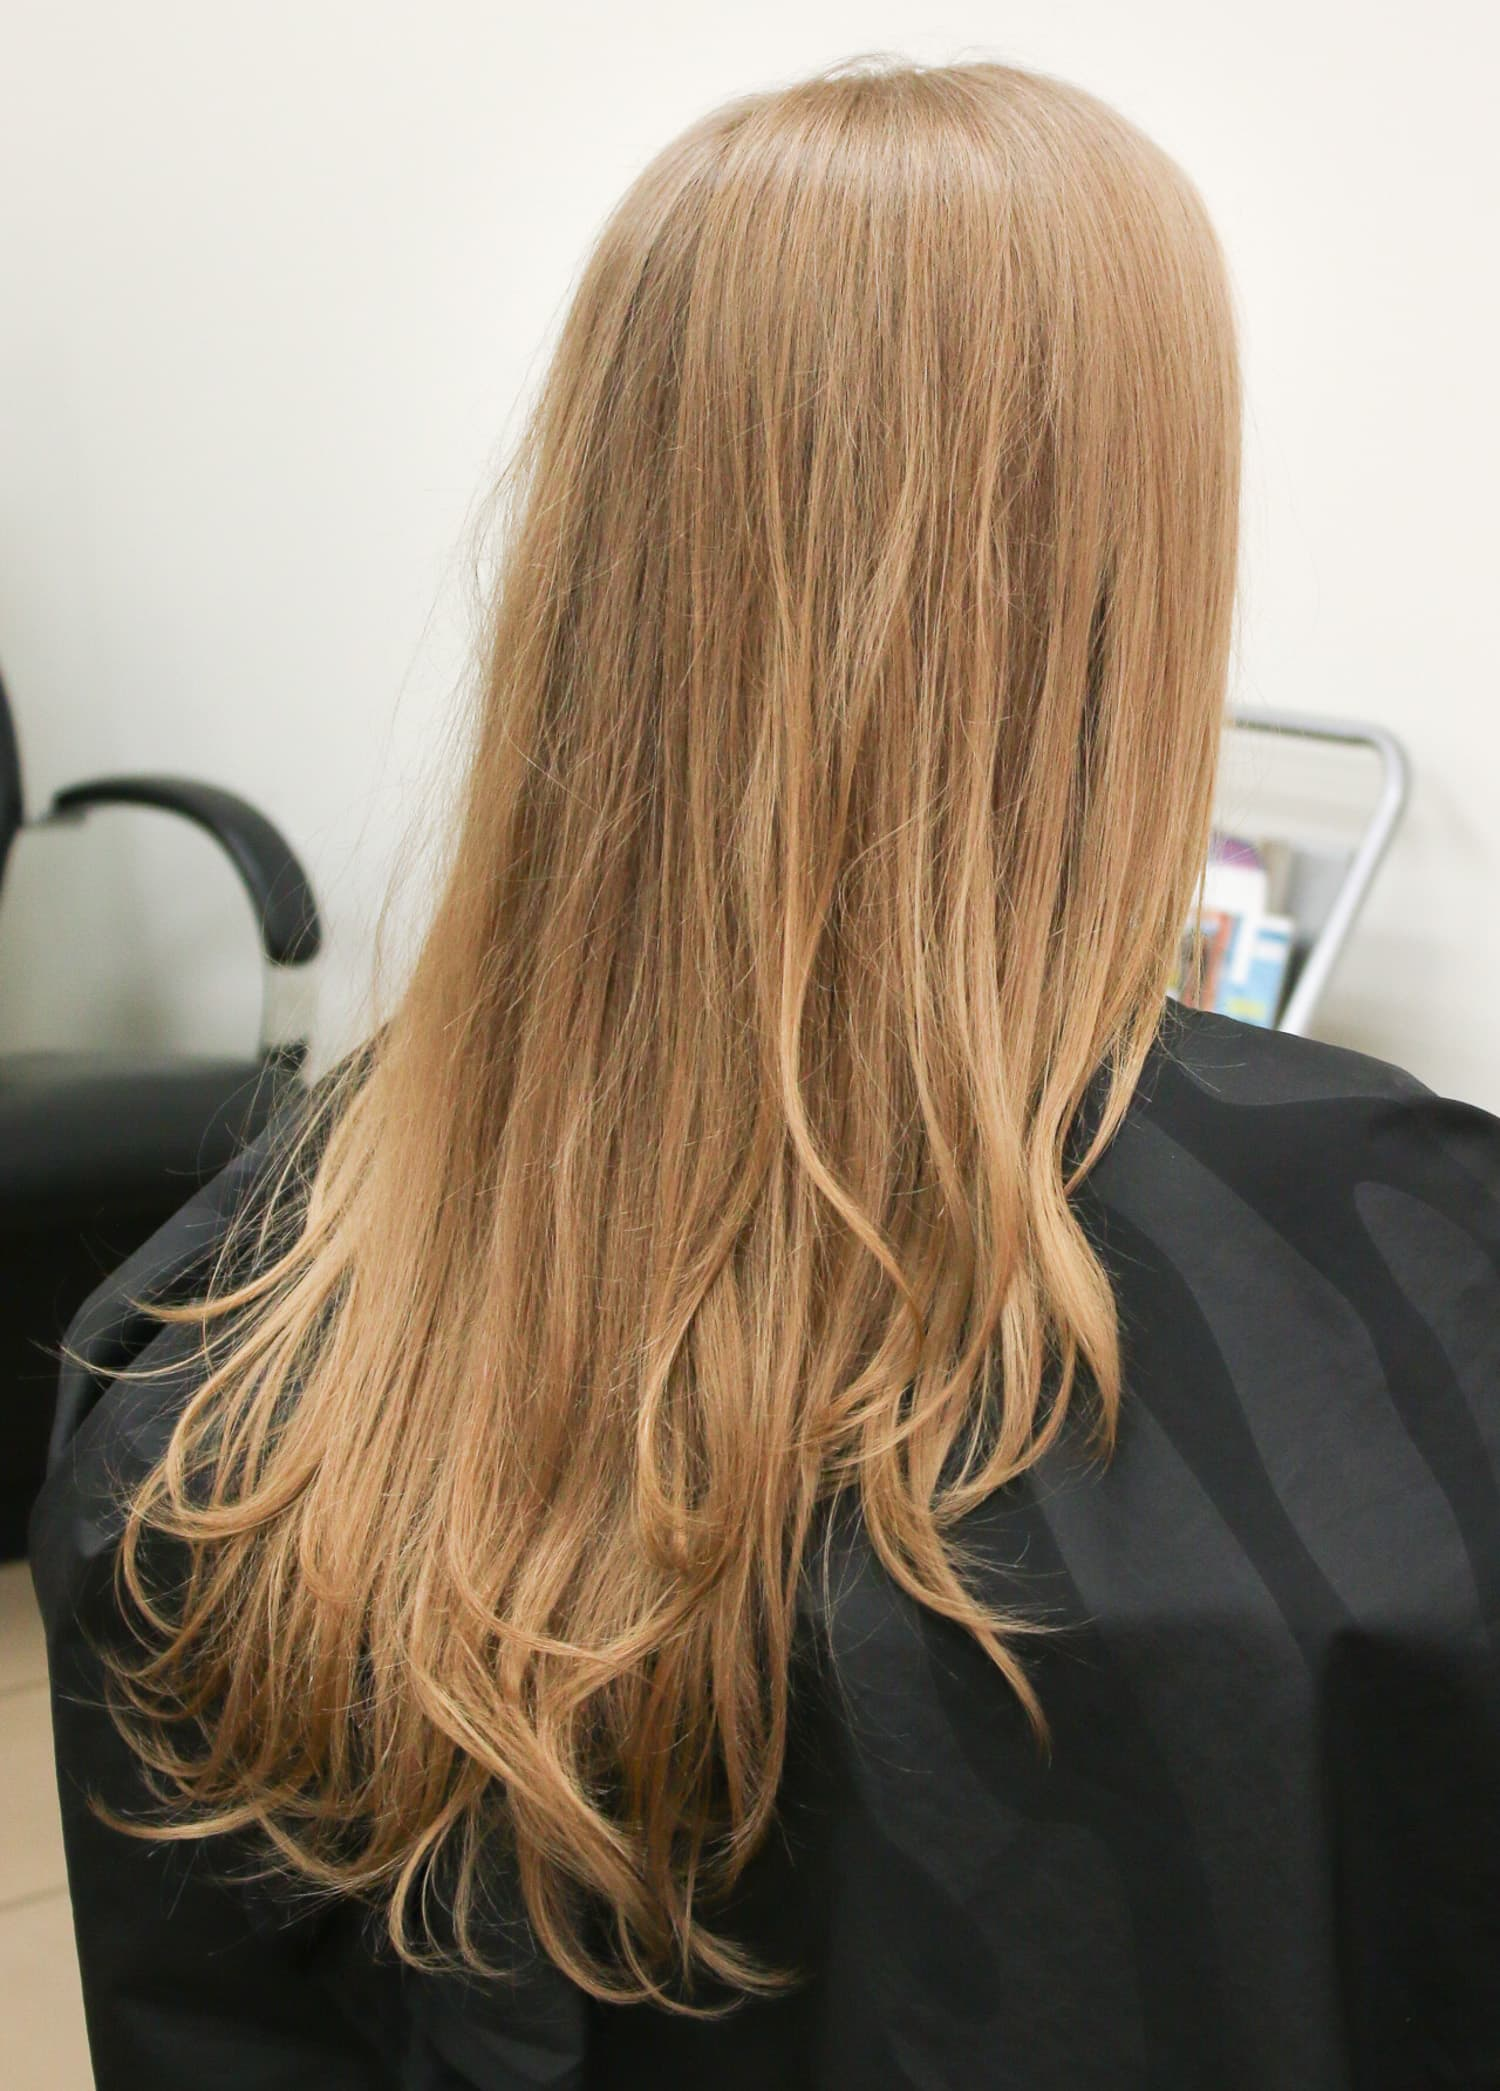 Long dirty blonde / ash blonde hair after a fresh blow dry at the Hair Cuttery salon